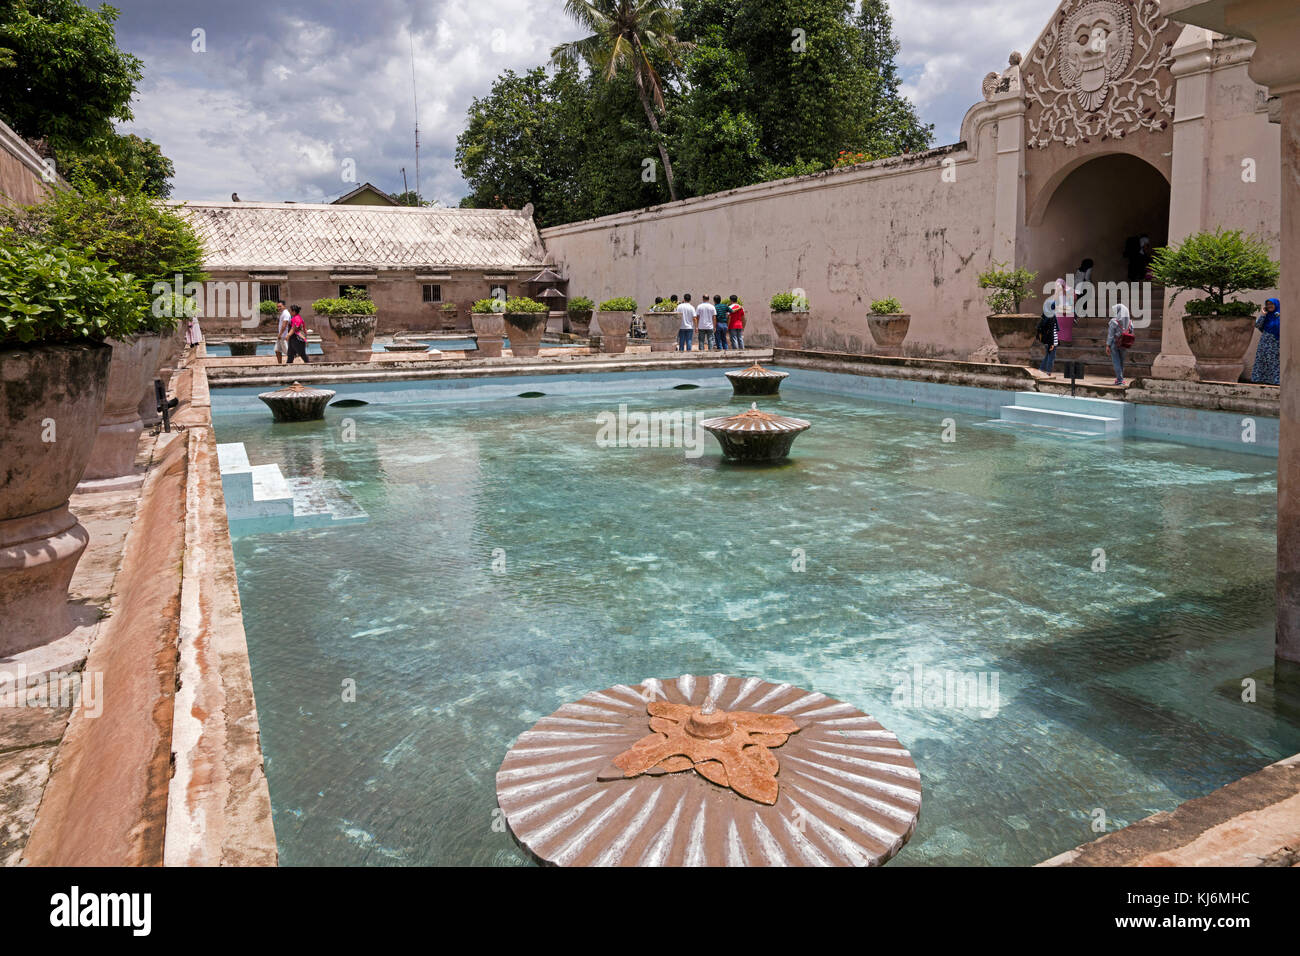 Bathing complex at the Taman Sari Water Castle, site of a former royal garden of the Sultanate of Yogyakarta, Java, - Stock Image